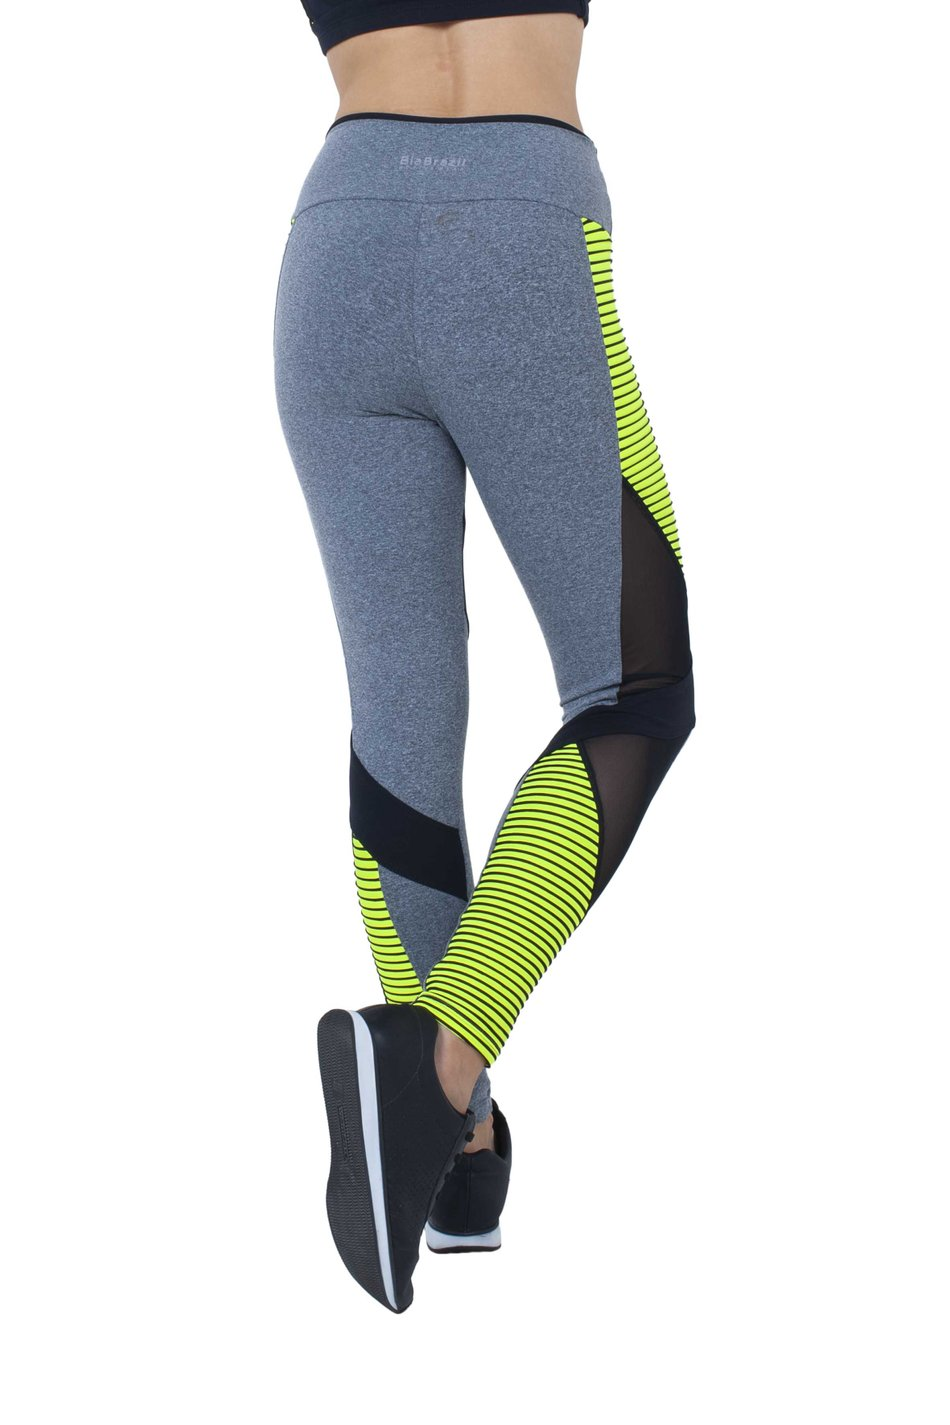 Legging Energy Grey and Green